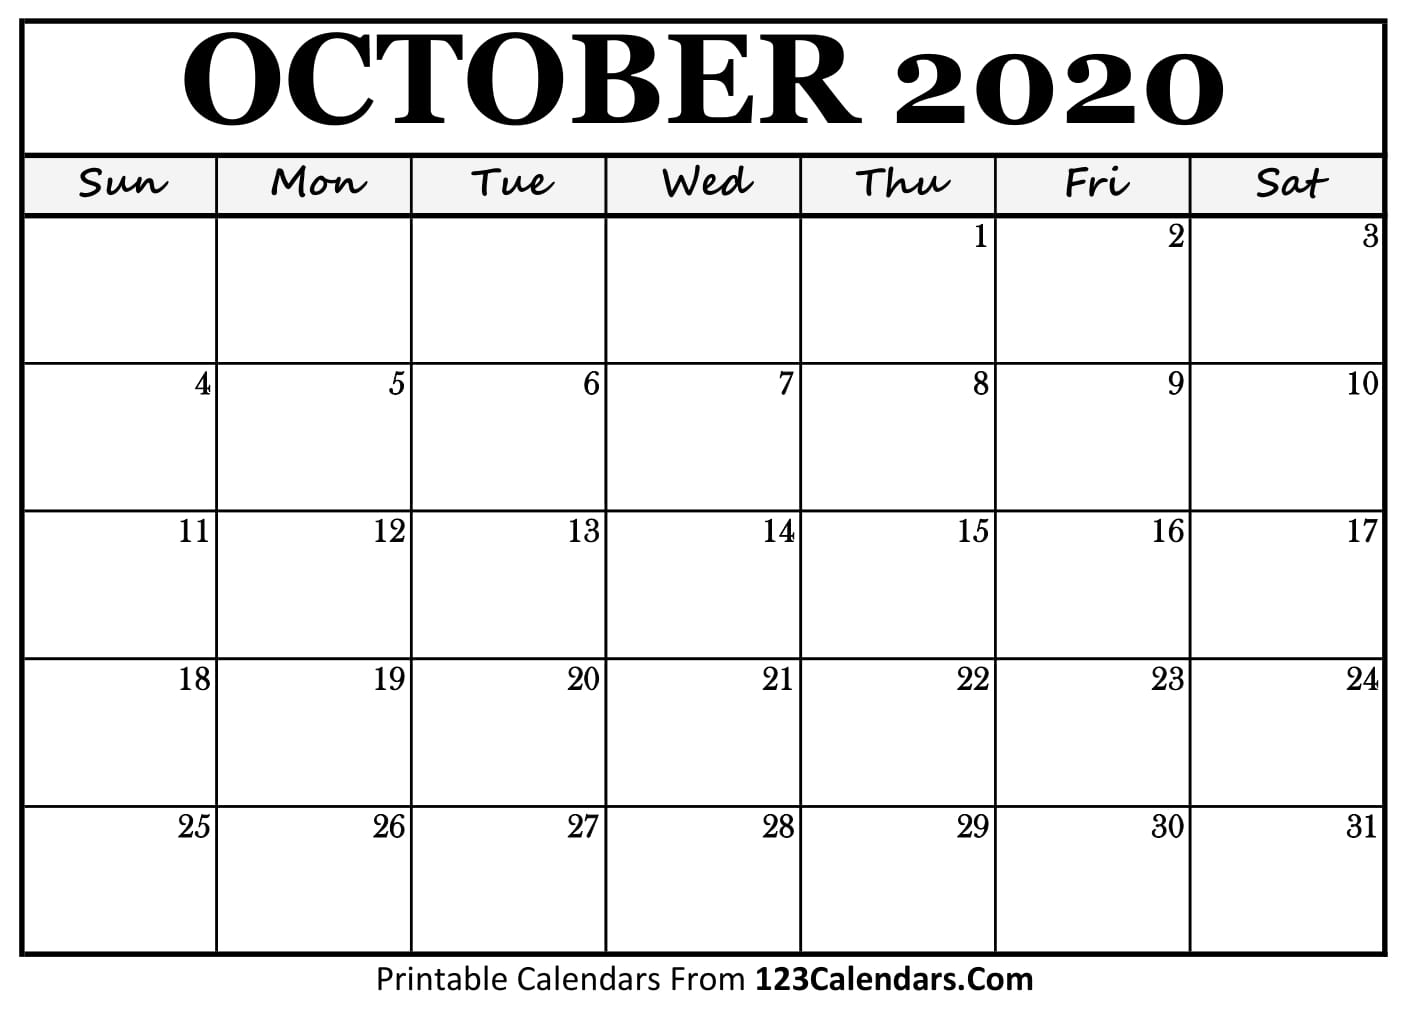 Free October 2020 Calendar | 123Calendars inside Vertex Montly Calendar October 2020